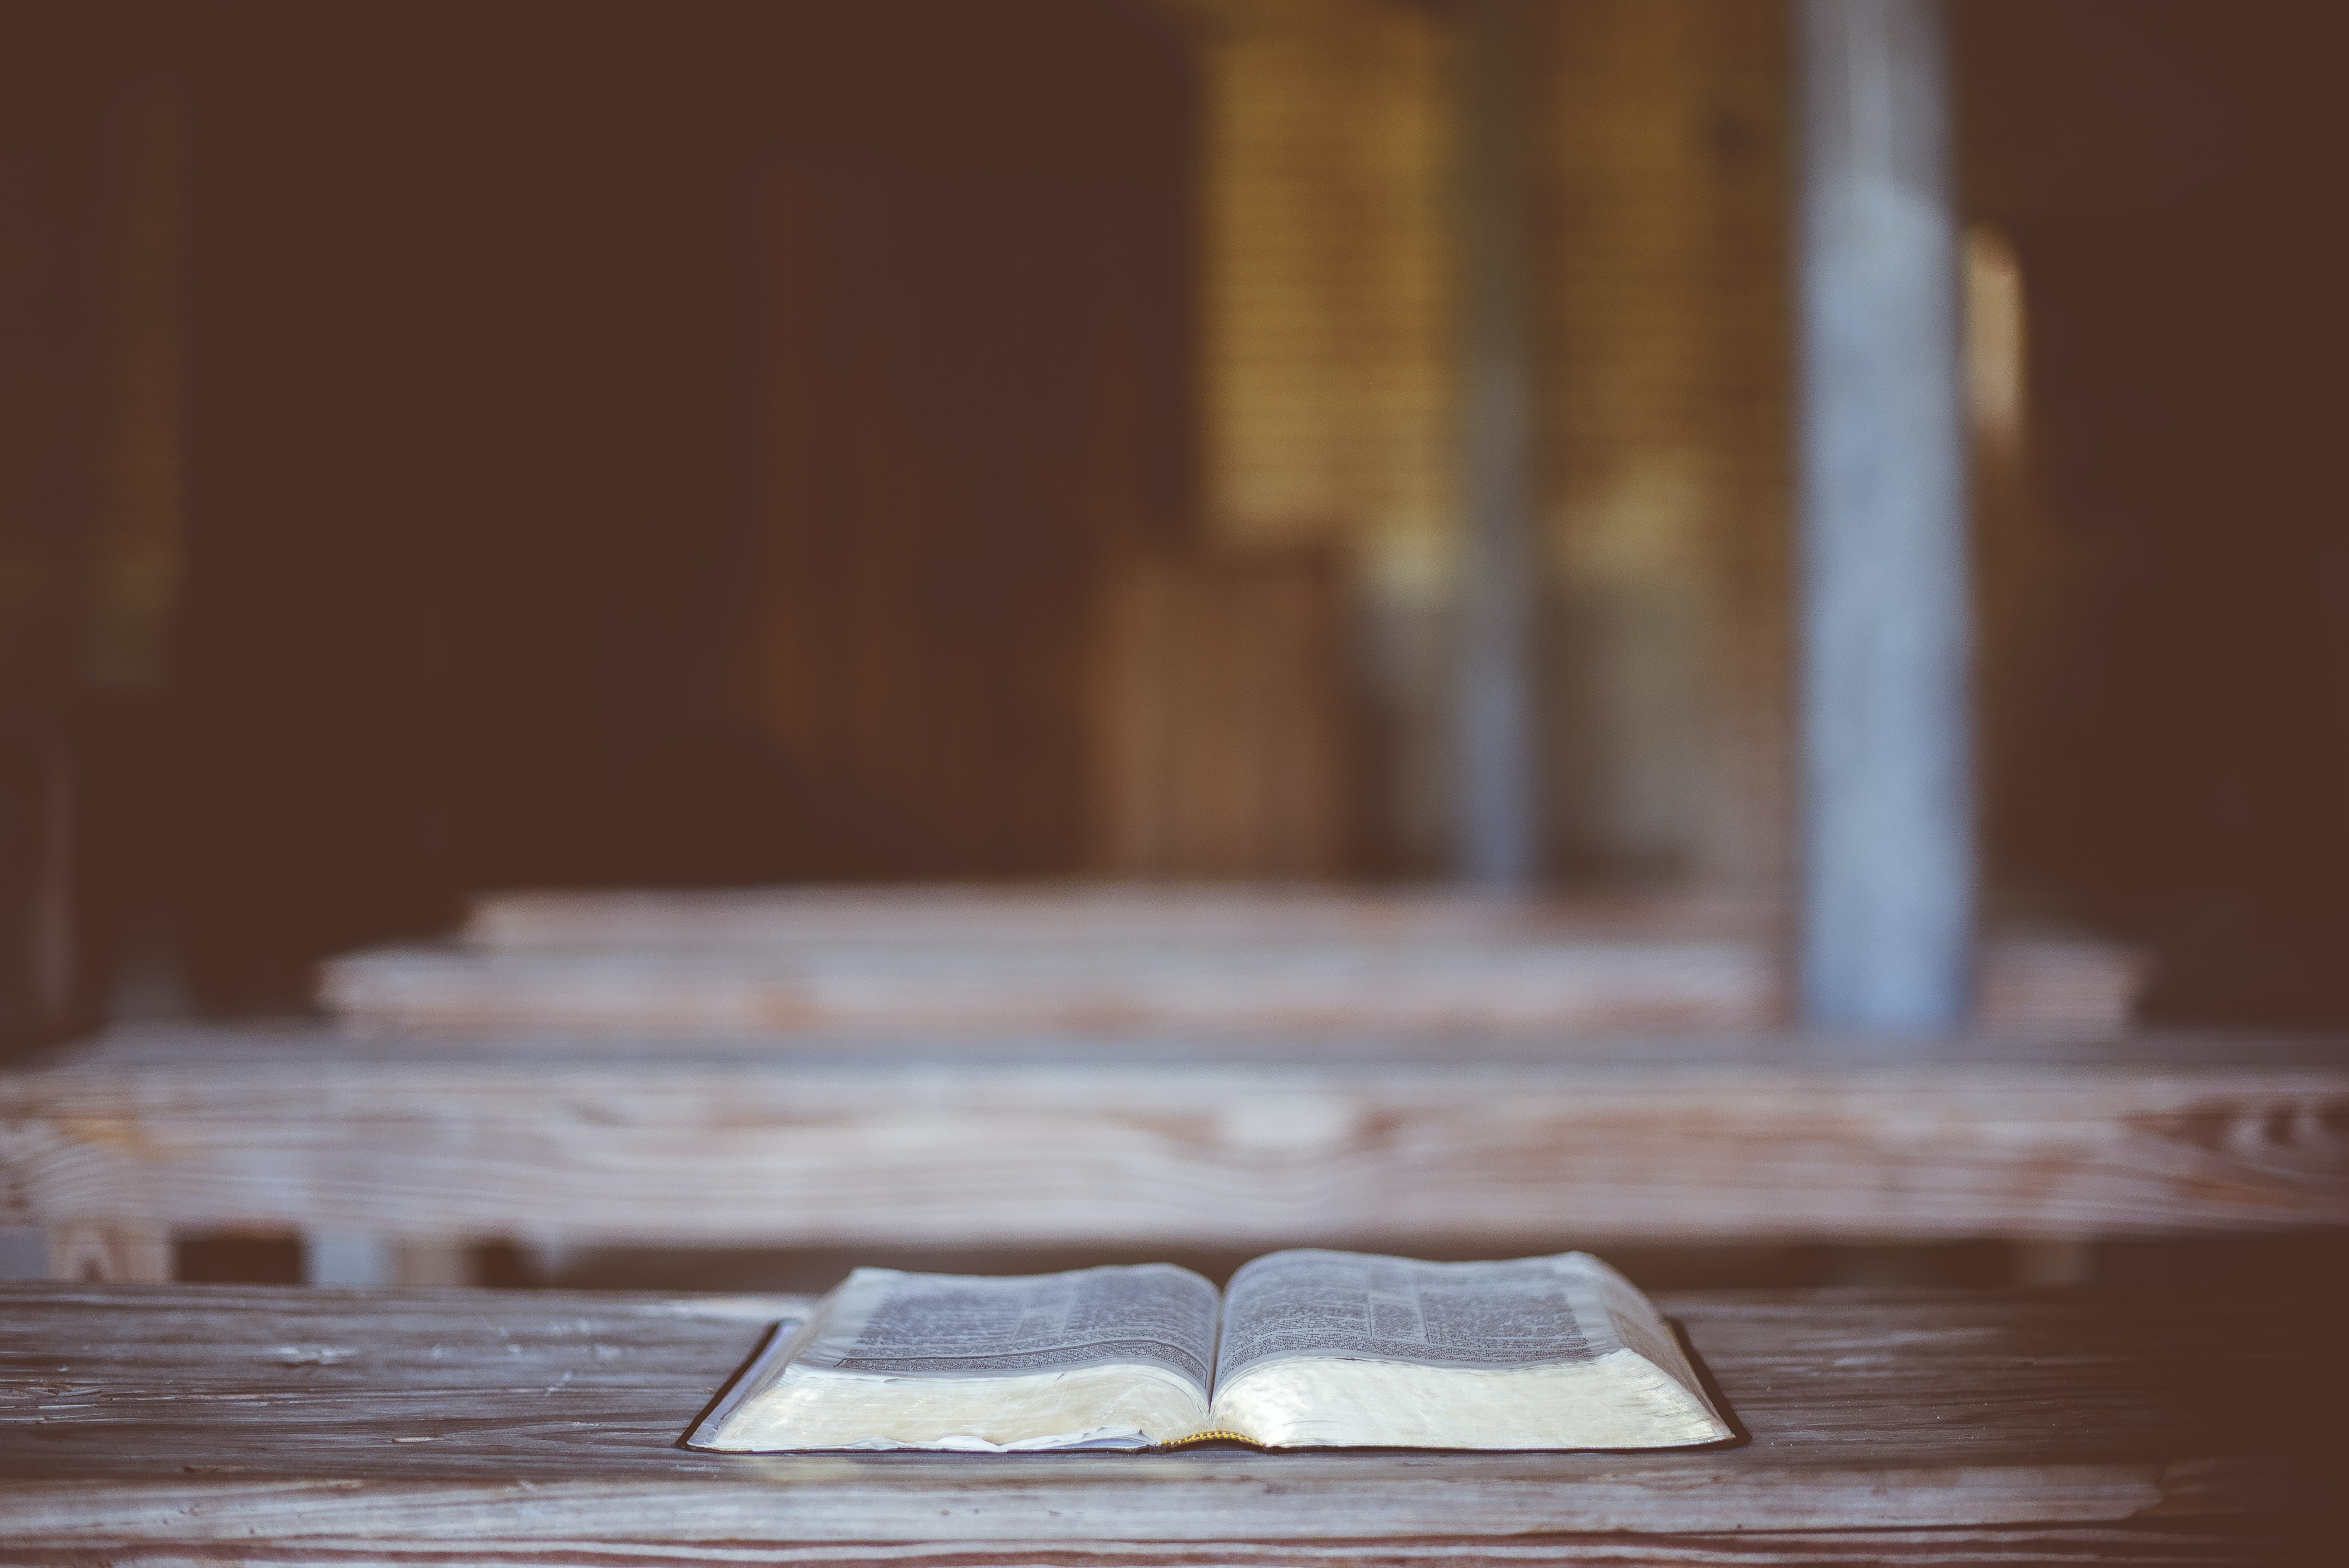 Religious text open on an empty chapel pew